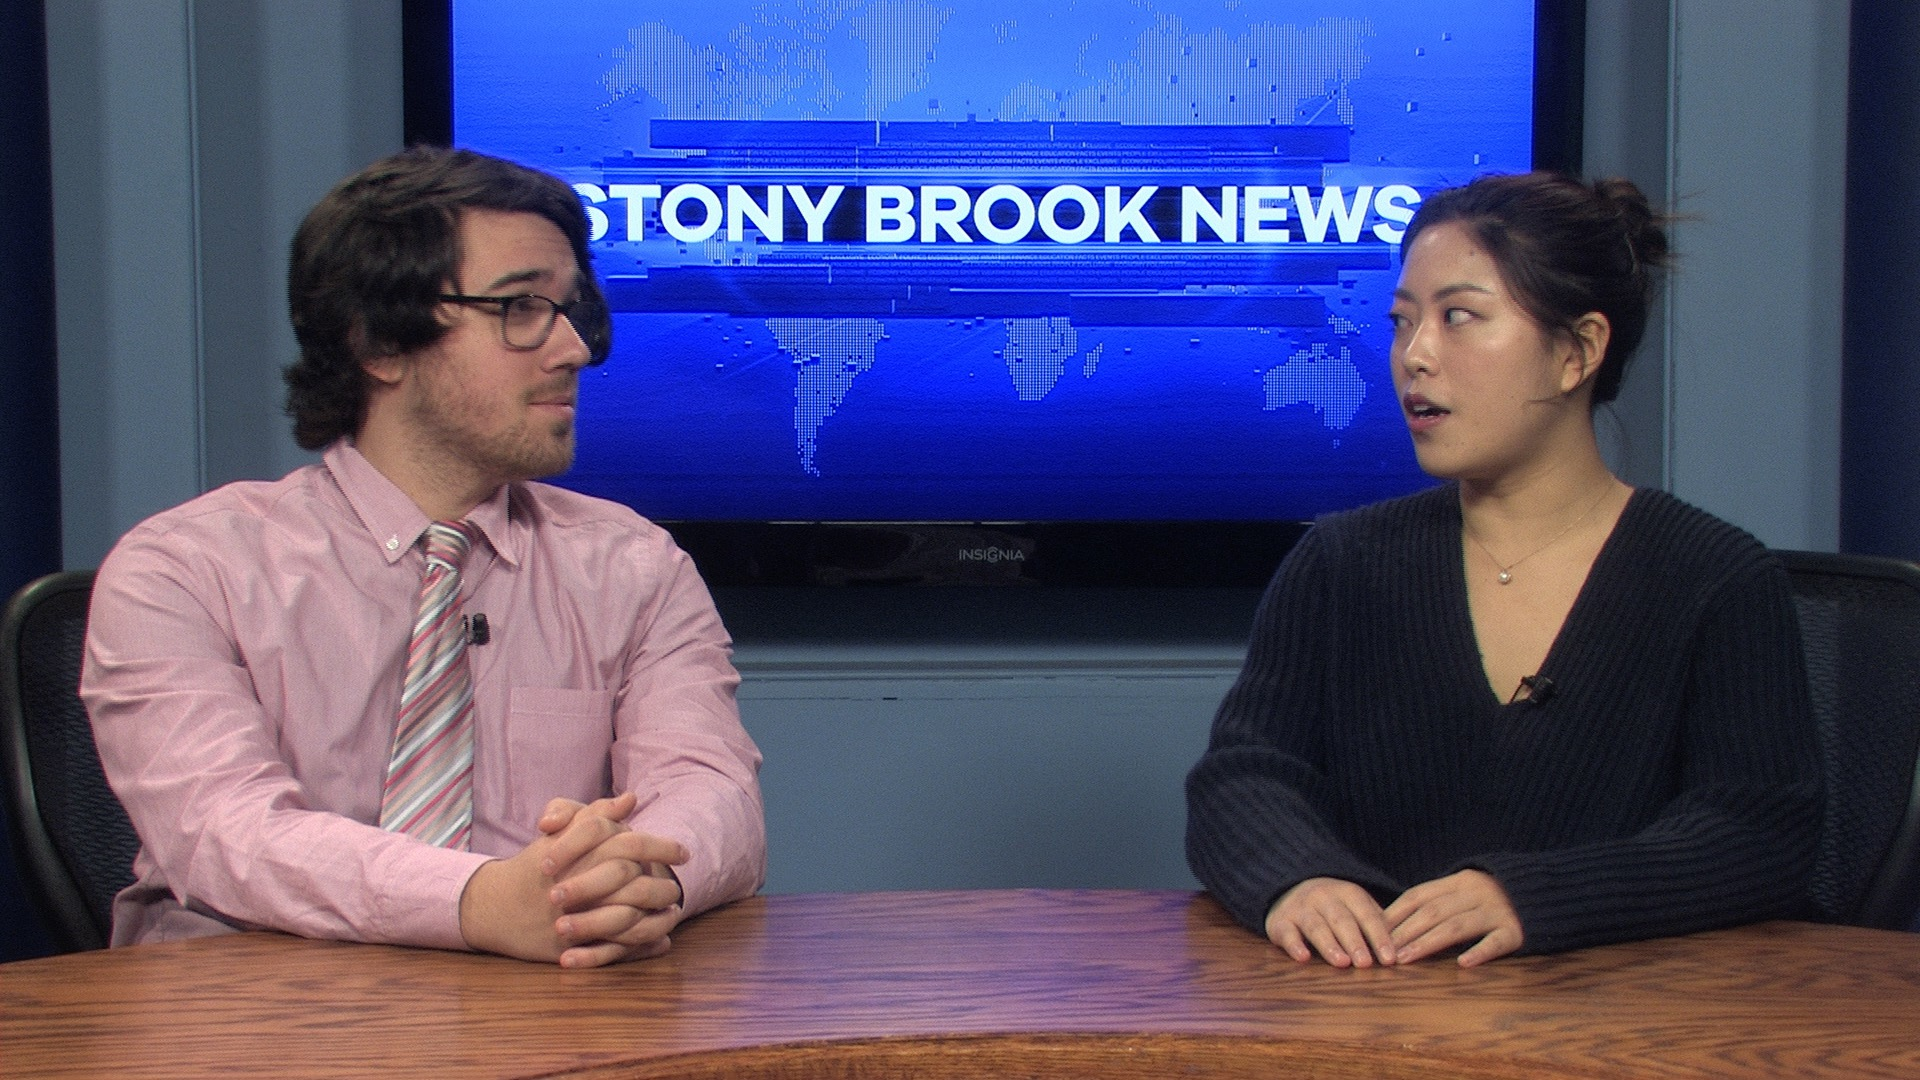 Stony Brook News – December 3, 2018